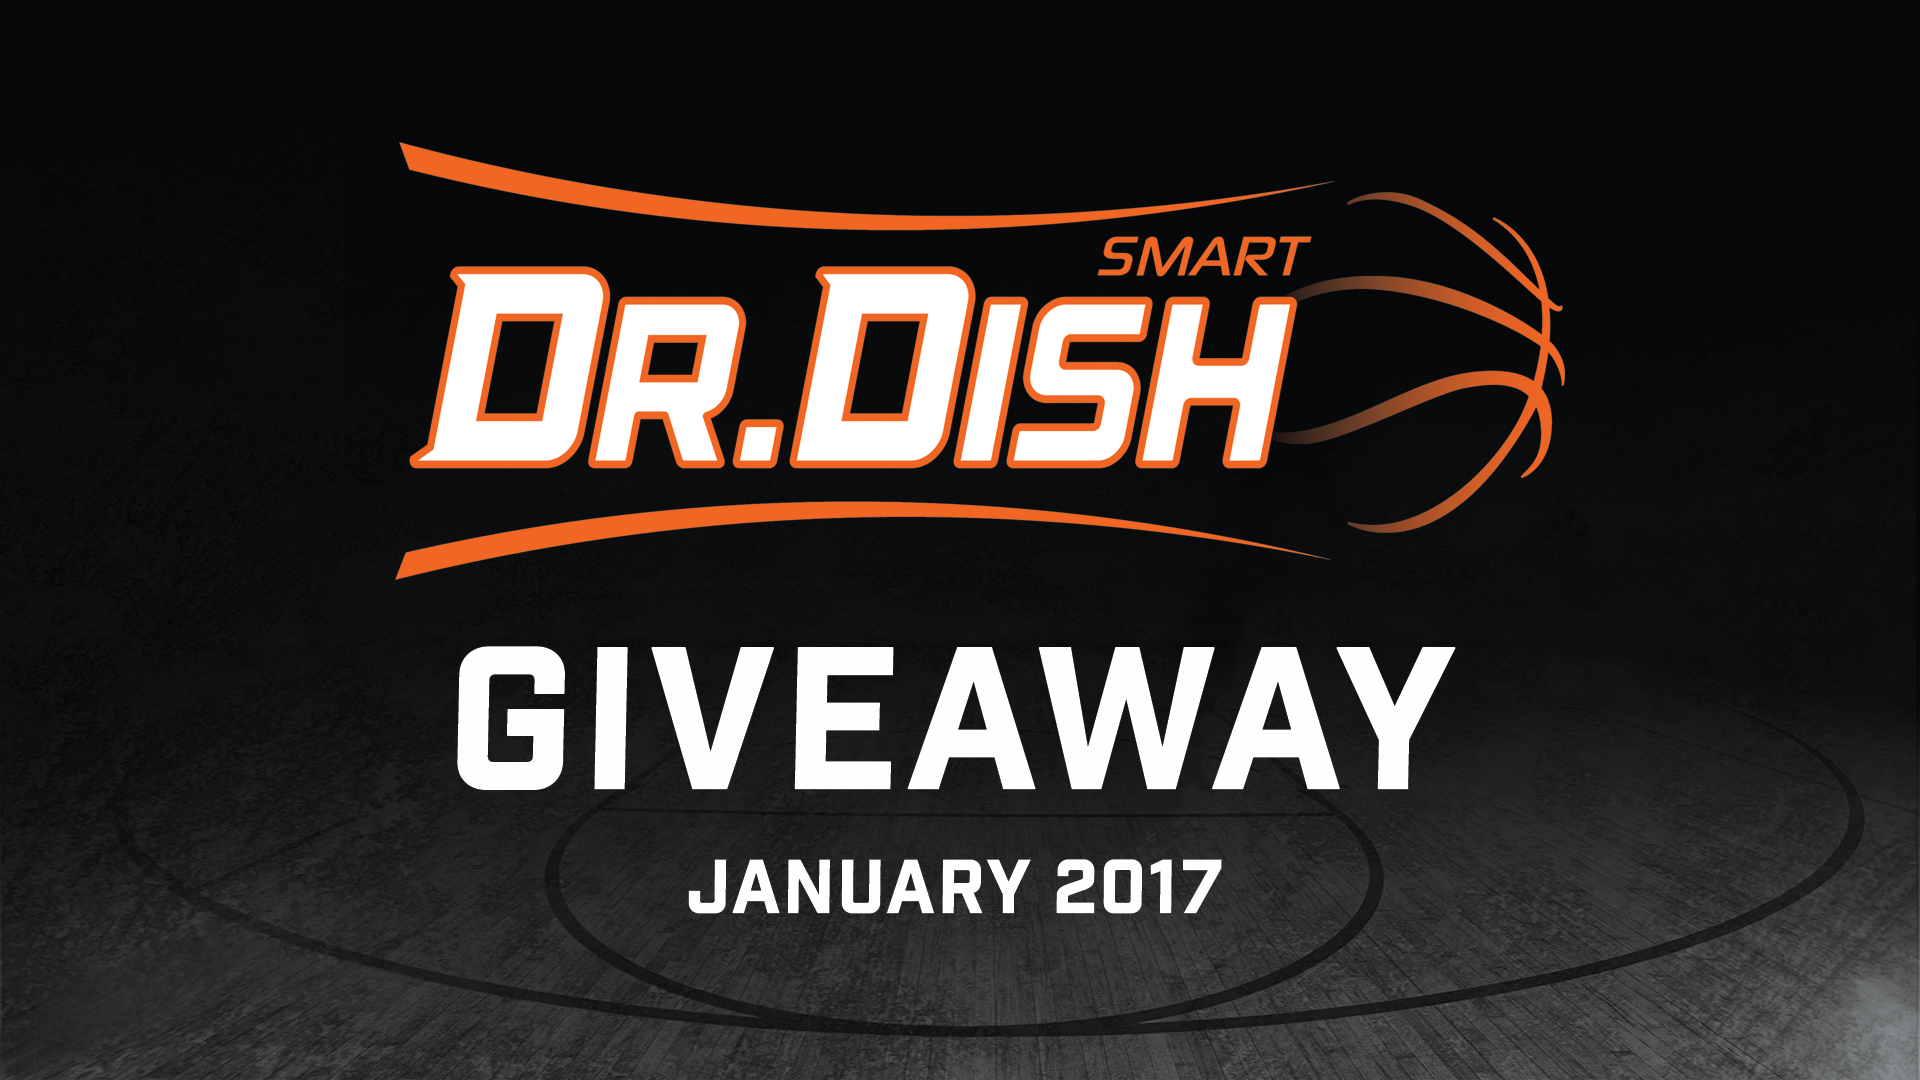 Checking in With The Winner of the 1st 2017 Dr. Dish Sweepstakes!